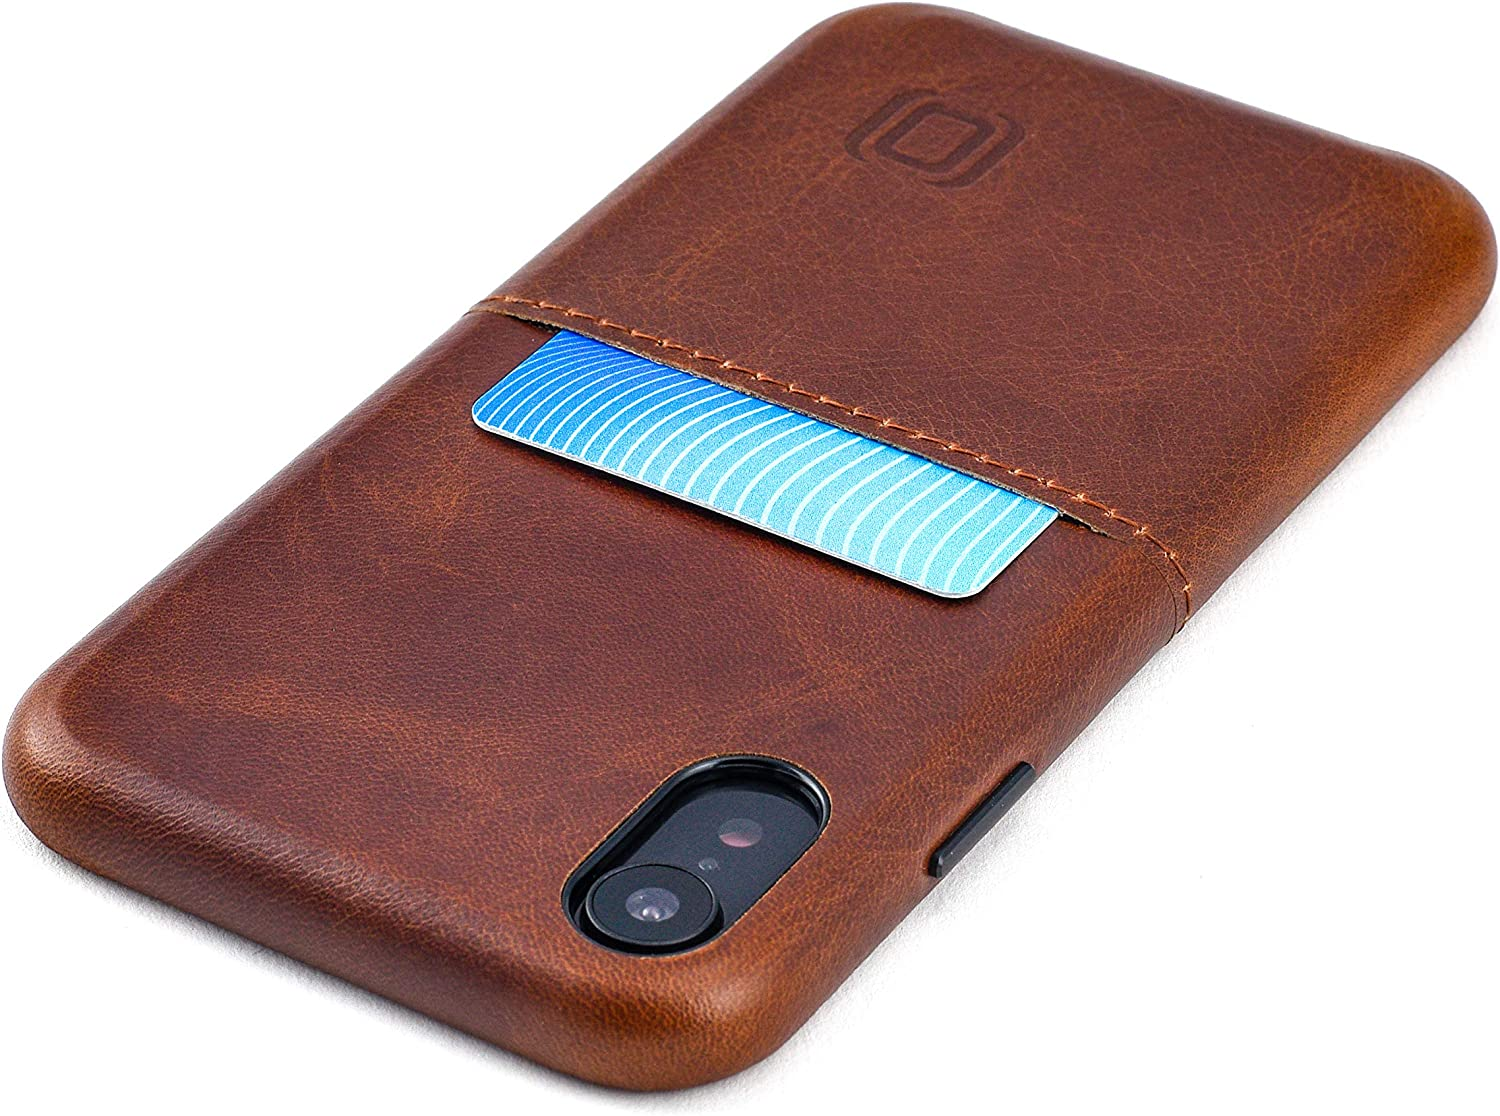 Dockem iPhone XR Virtuosa M1 Wallet Case: Built-in Metal Plate for Magnetic Mounting with Top Grain Genuine Leather: M-Series [Brown]